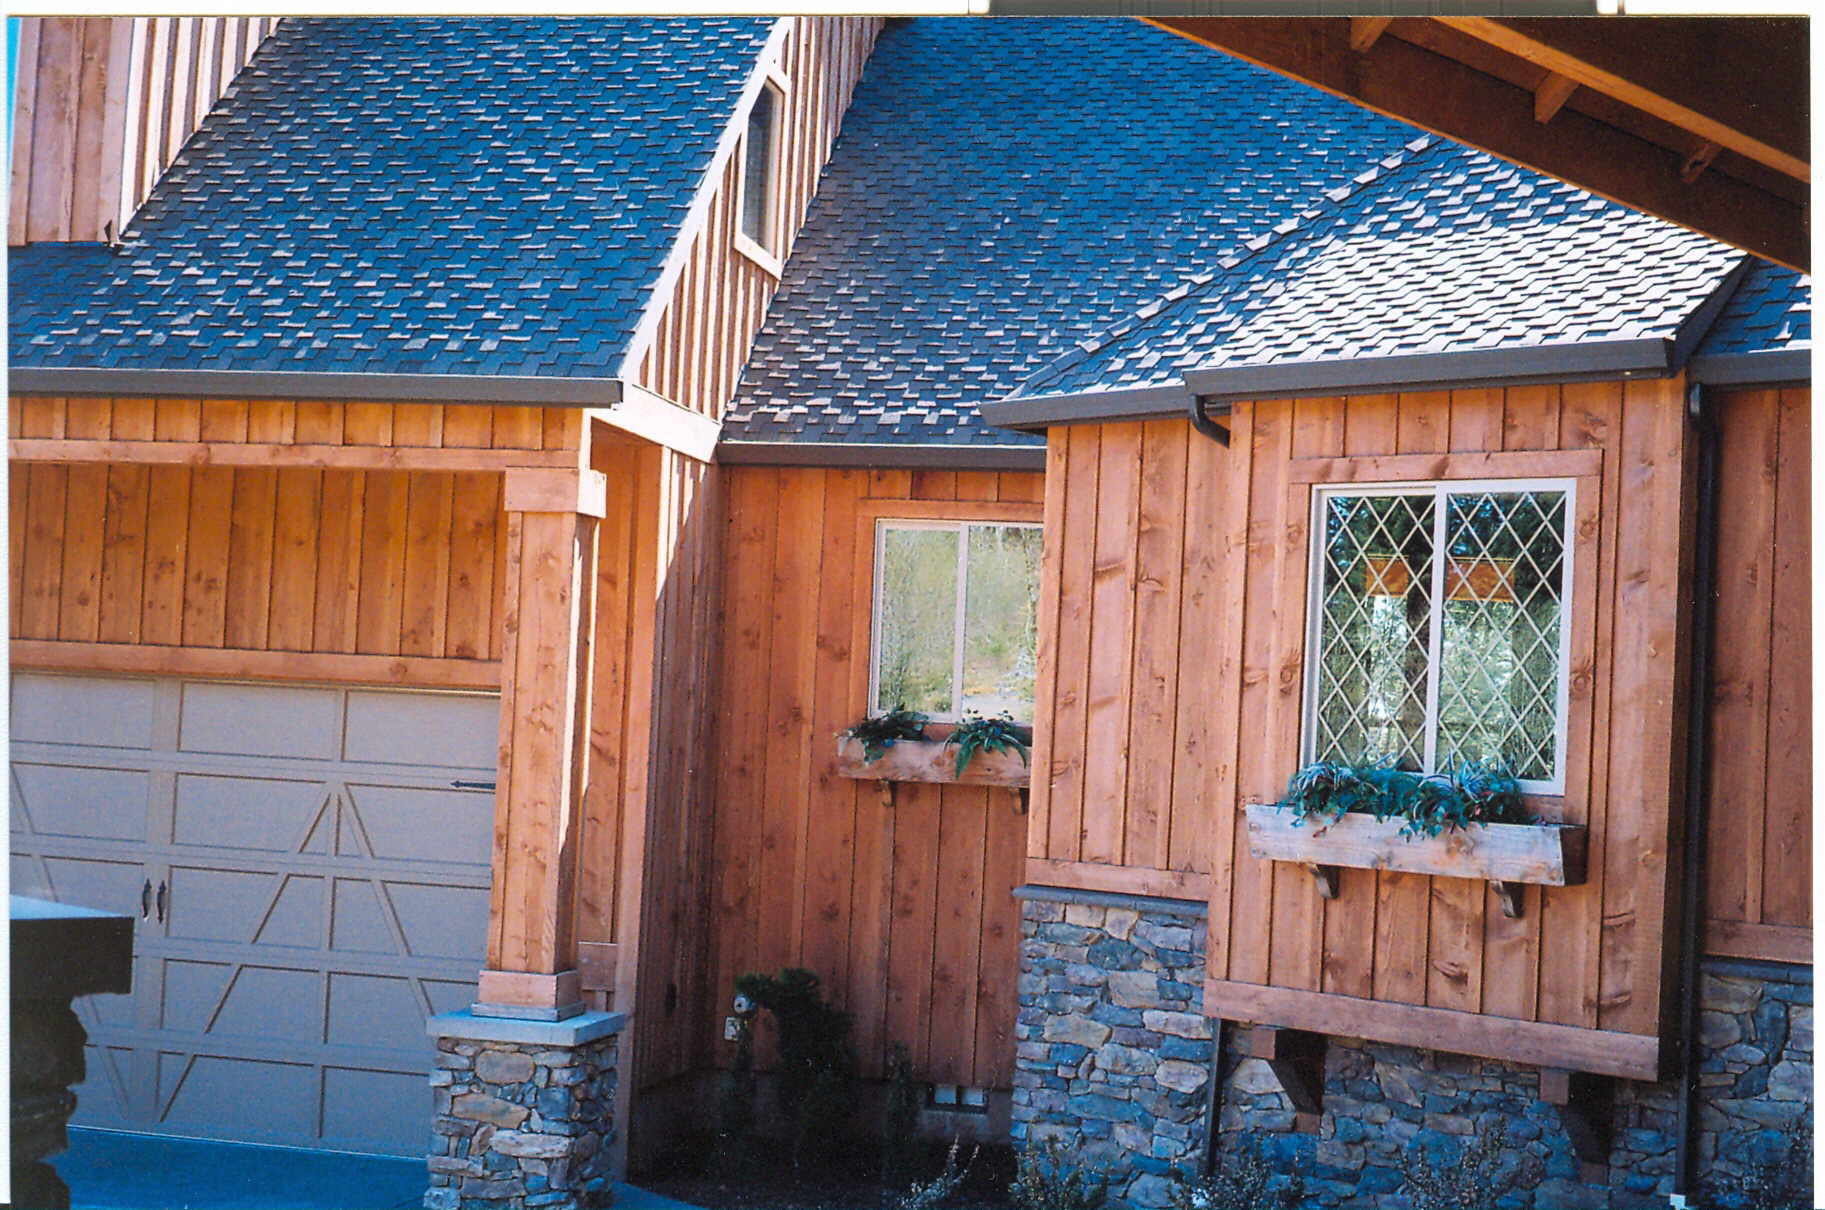 click for larger image of this siding project